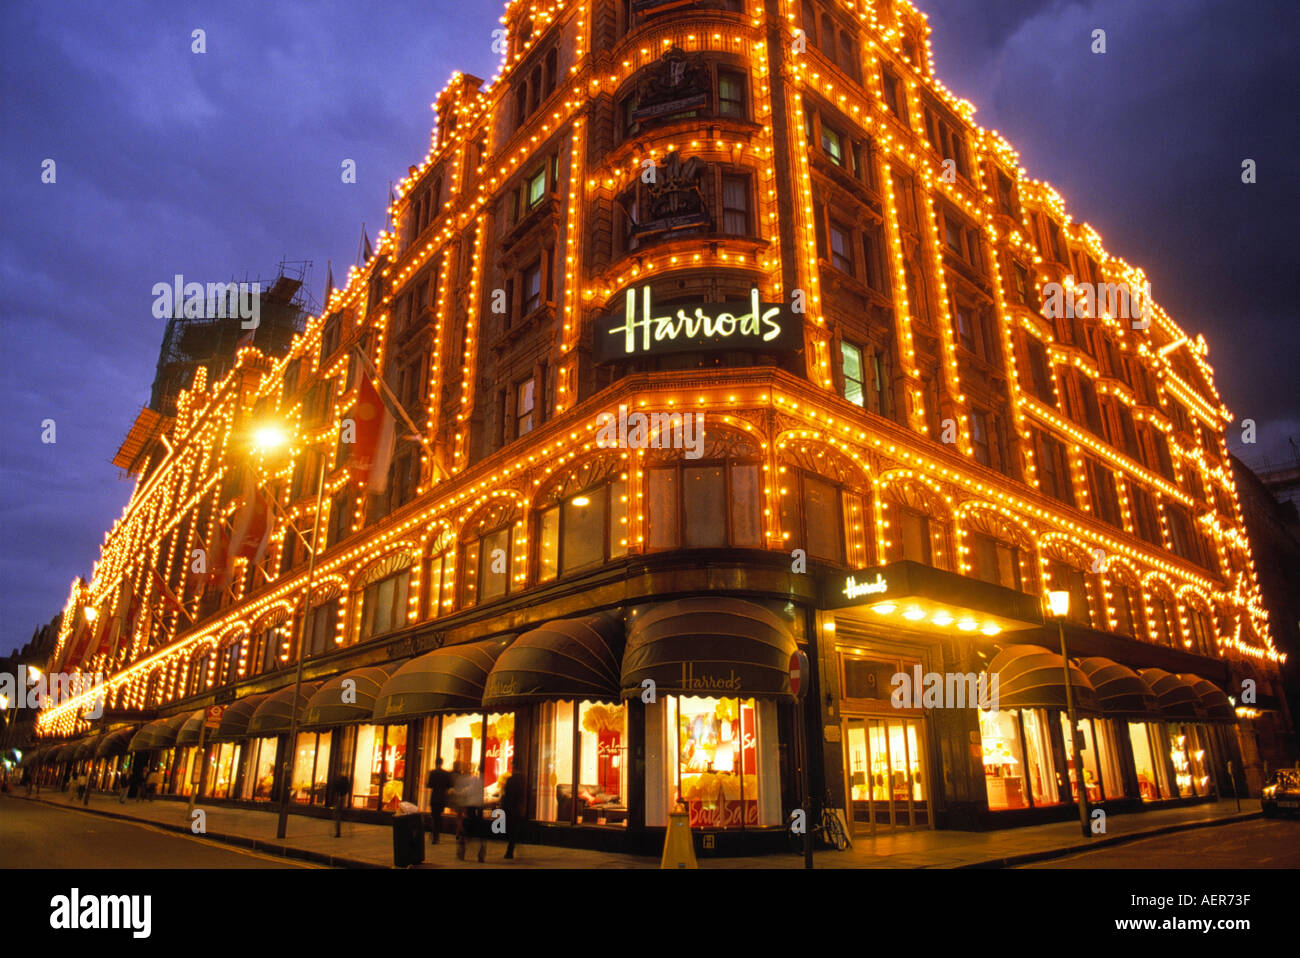 harrods department store at christmas city of london england great stock photo 2553662 alamy. Black Bedroom Furniture Sets. Home Design Ideas